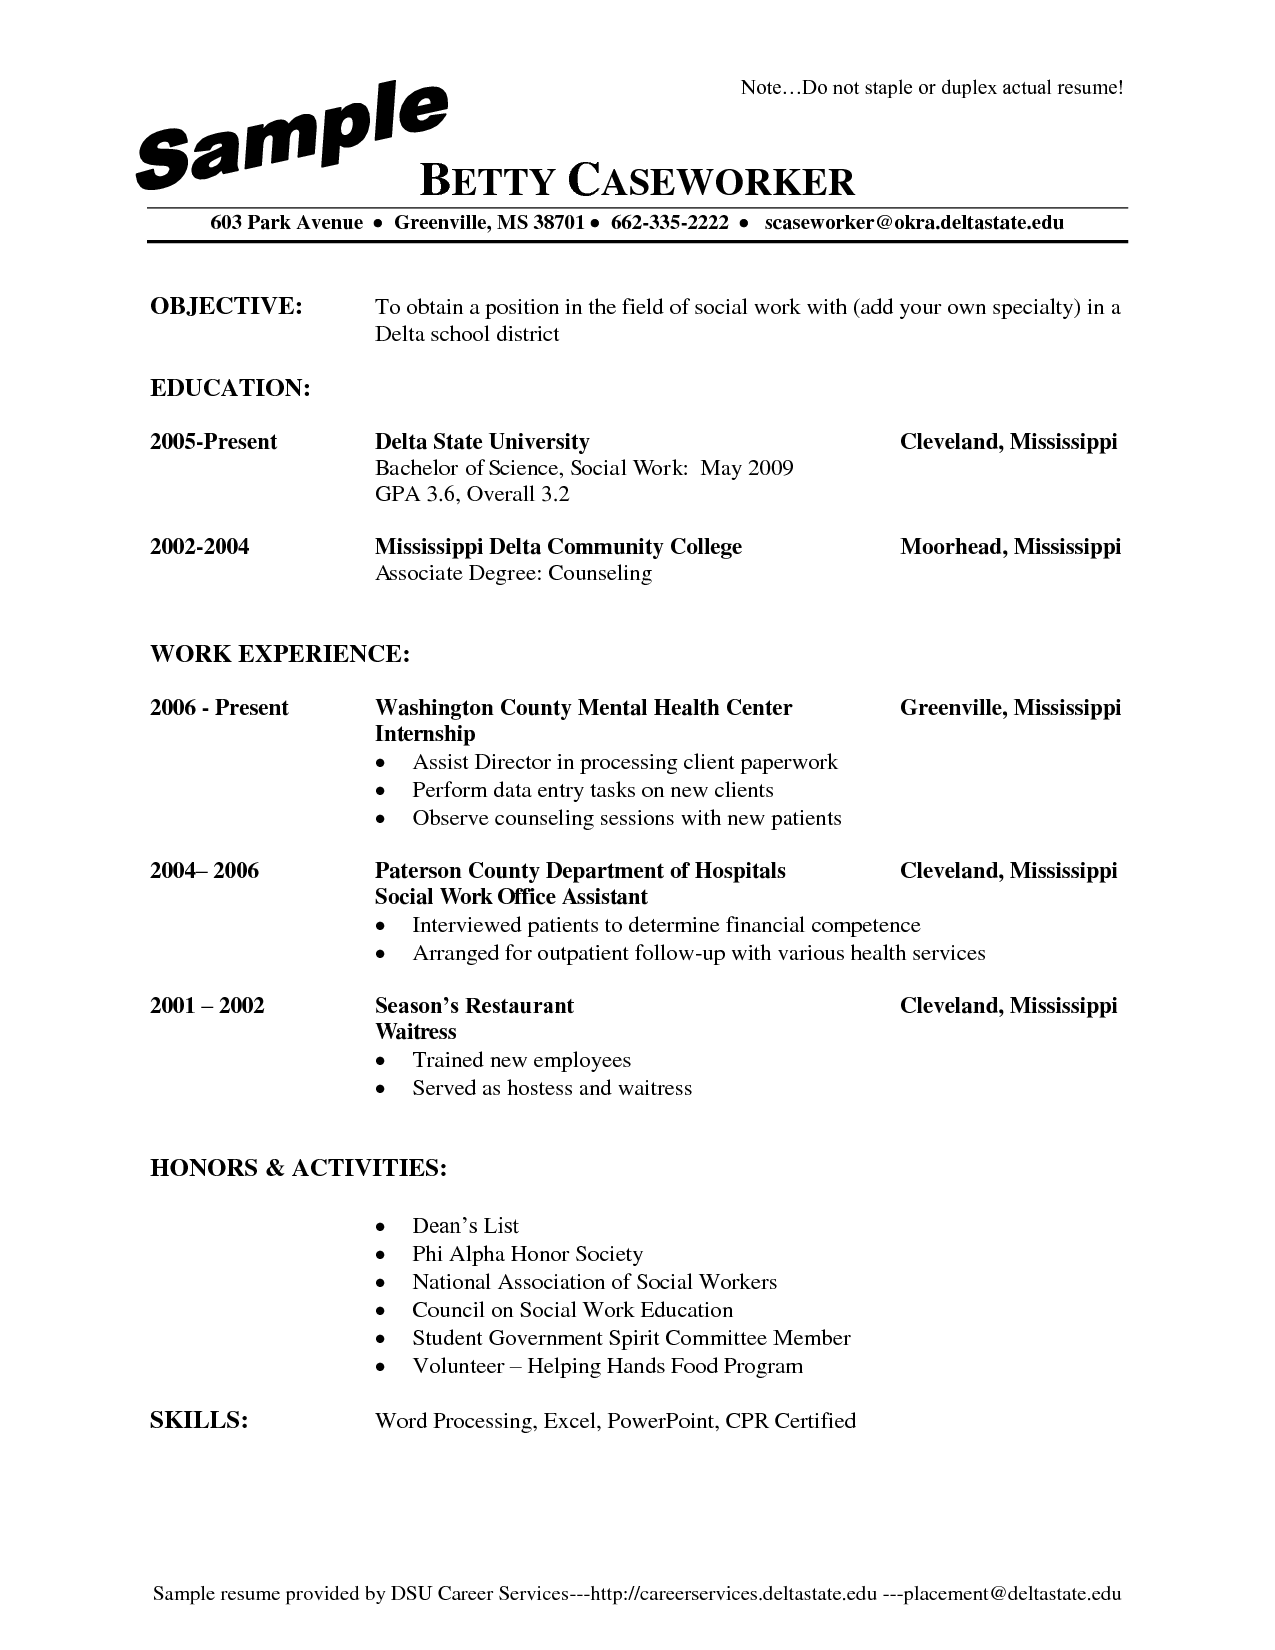 server resume samples free - Roberto.mattni.co